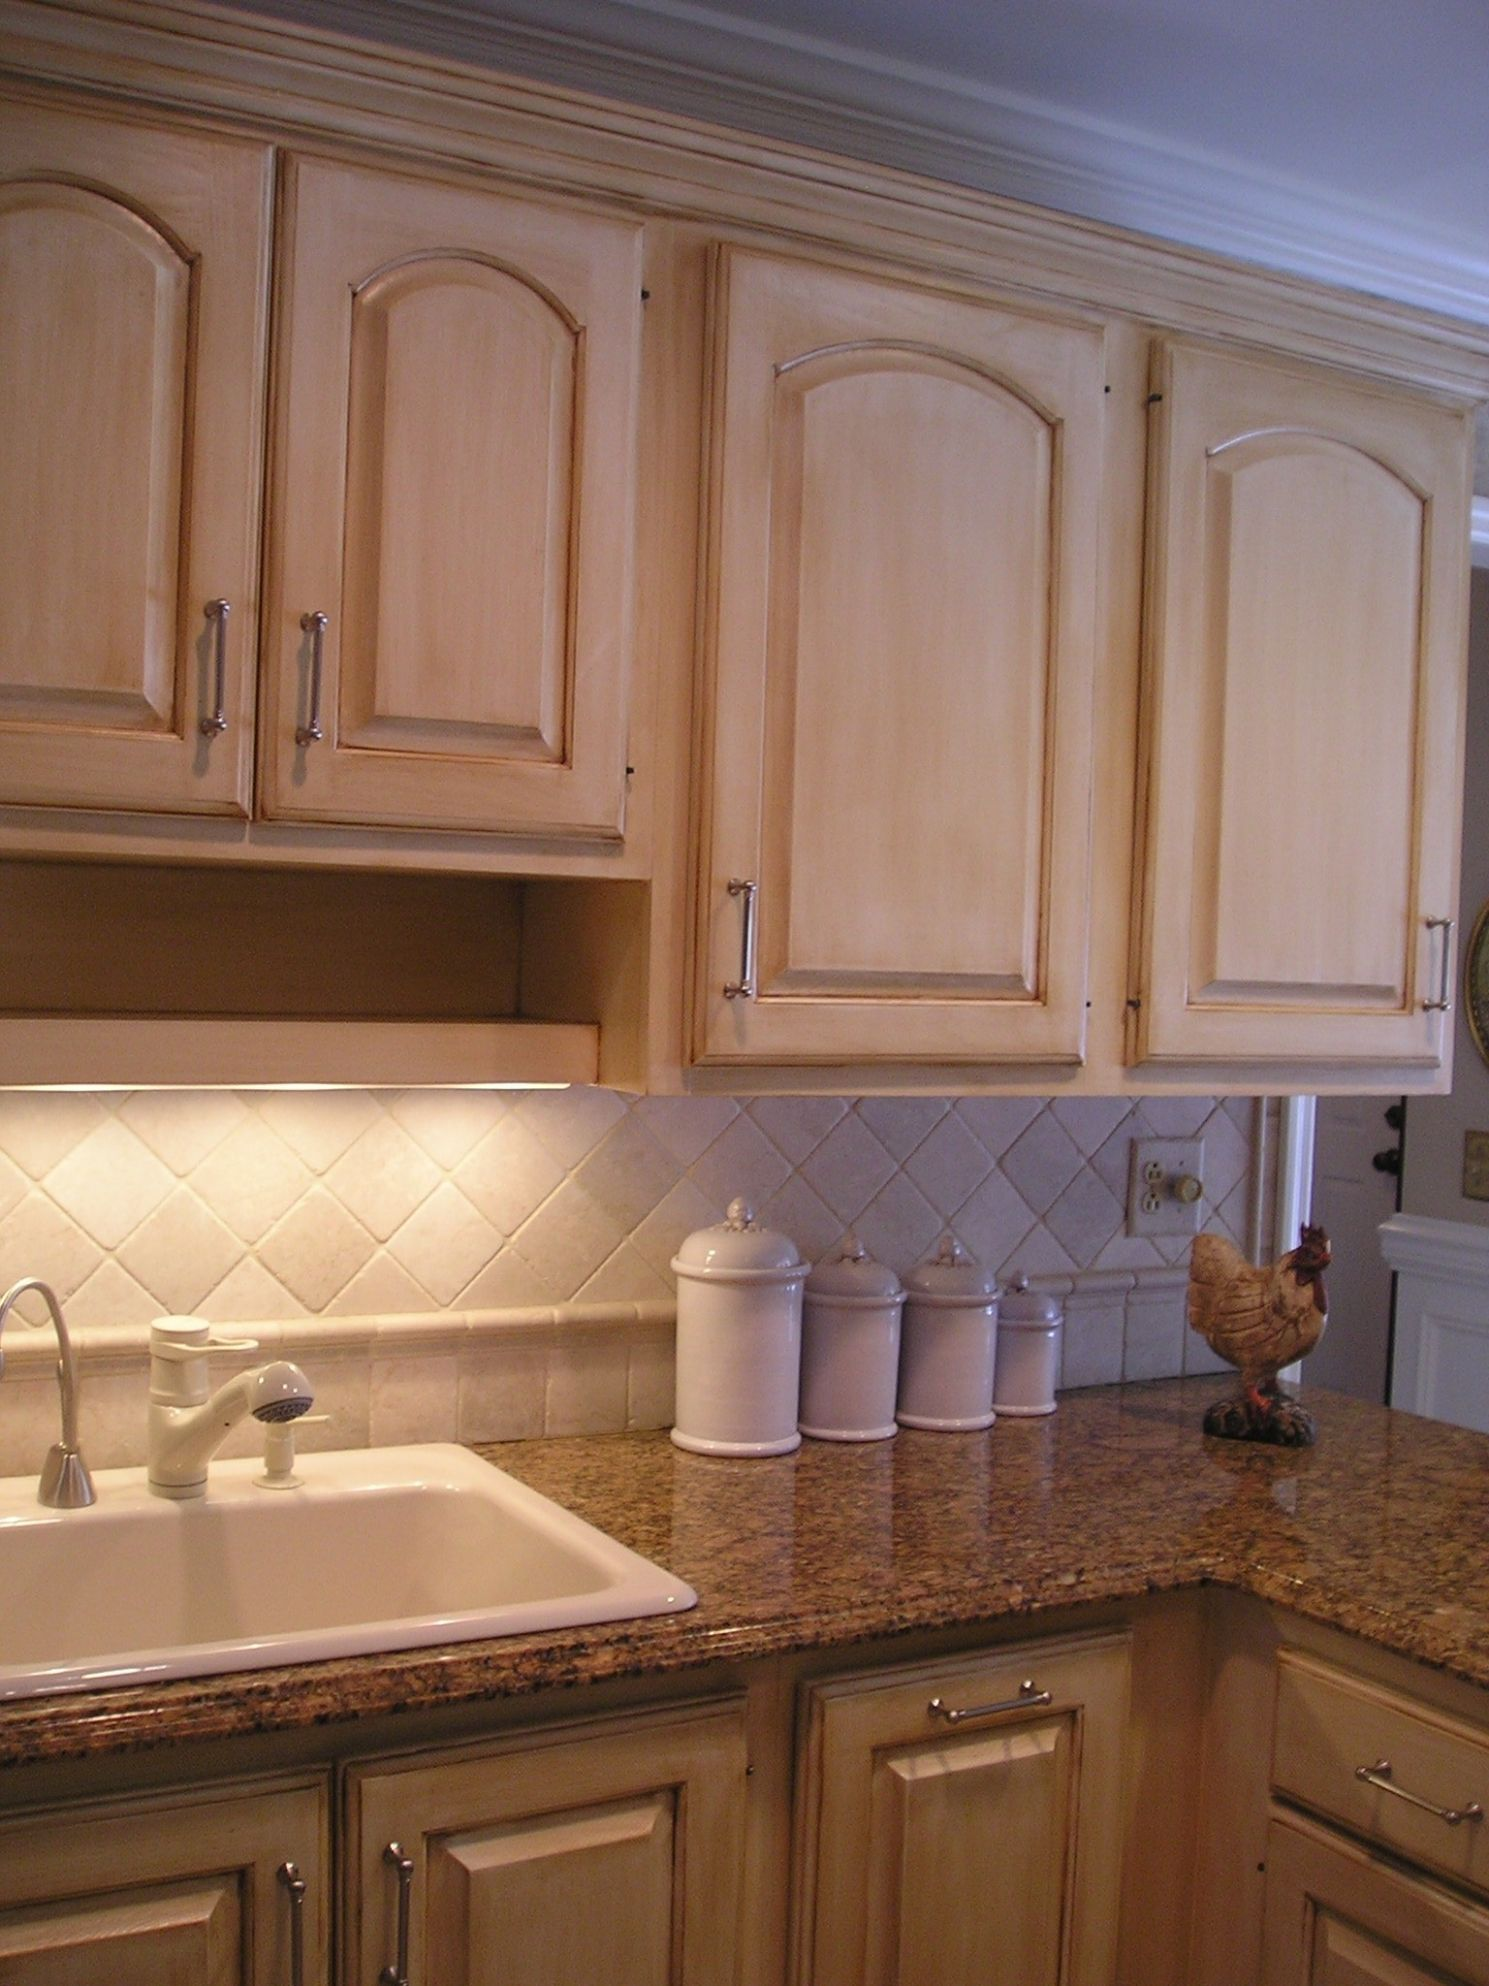 Kitchen Colors With Light Brown Cabinets Bakers Racks White Color ..